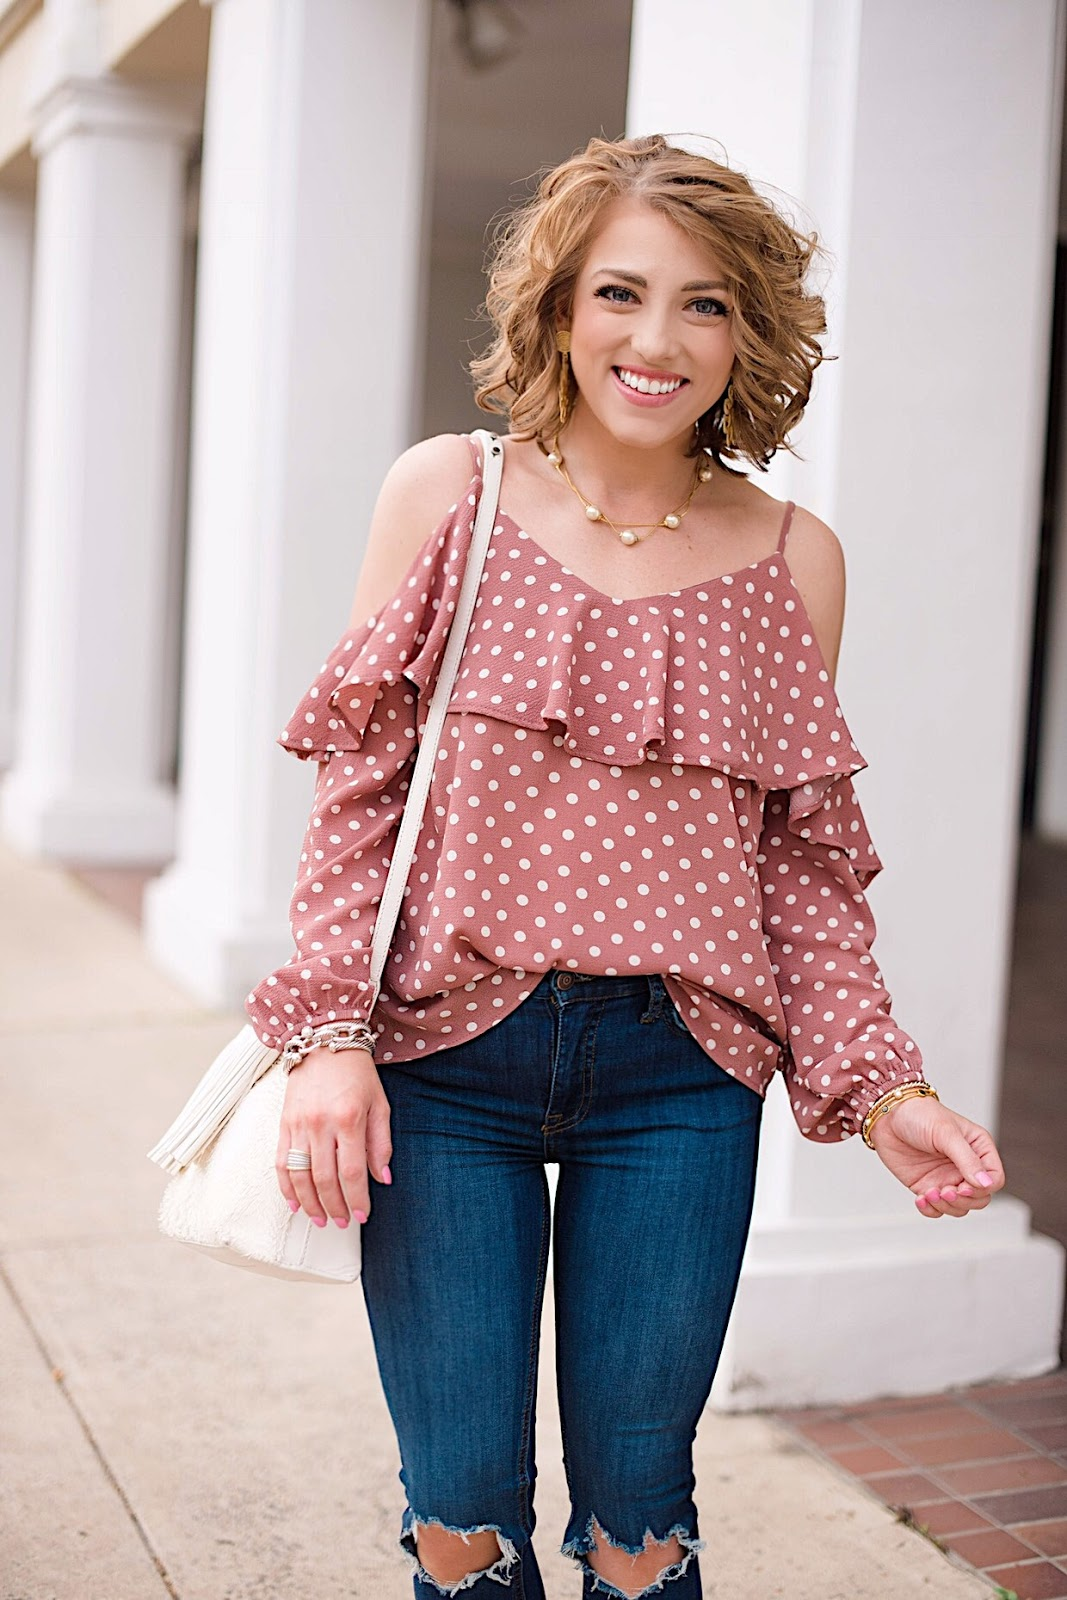 Under $50 Cold Shoulder Polka Dot Top - Click through to see more on Something Delightful Blog